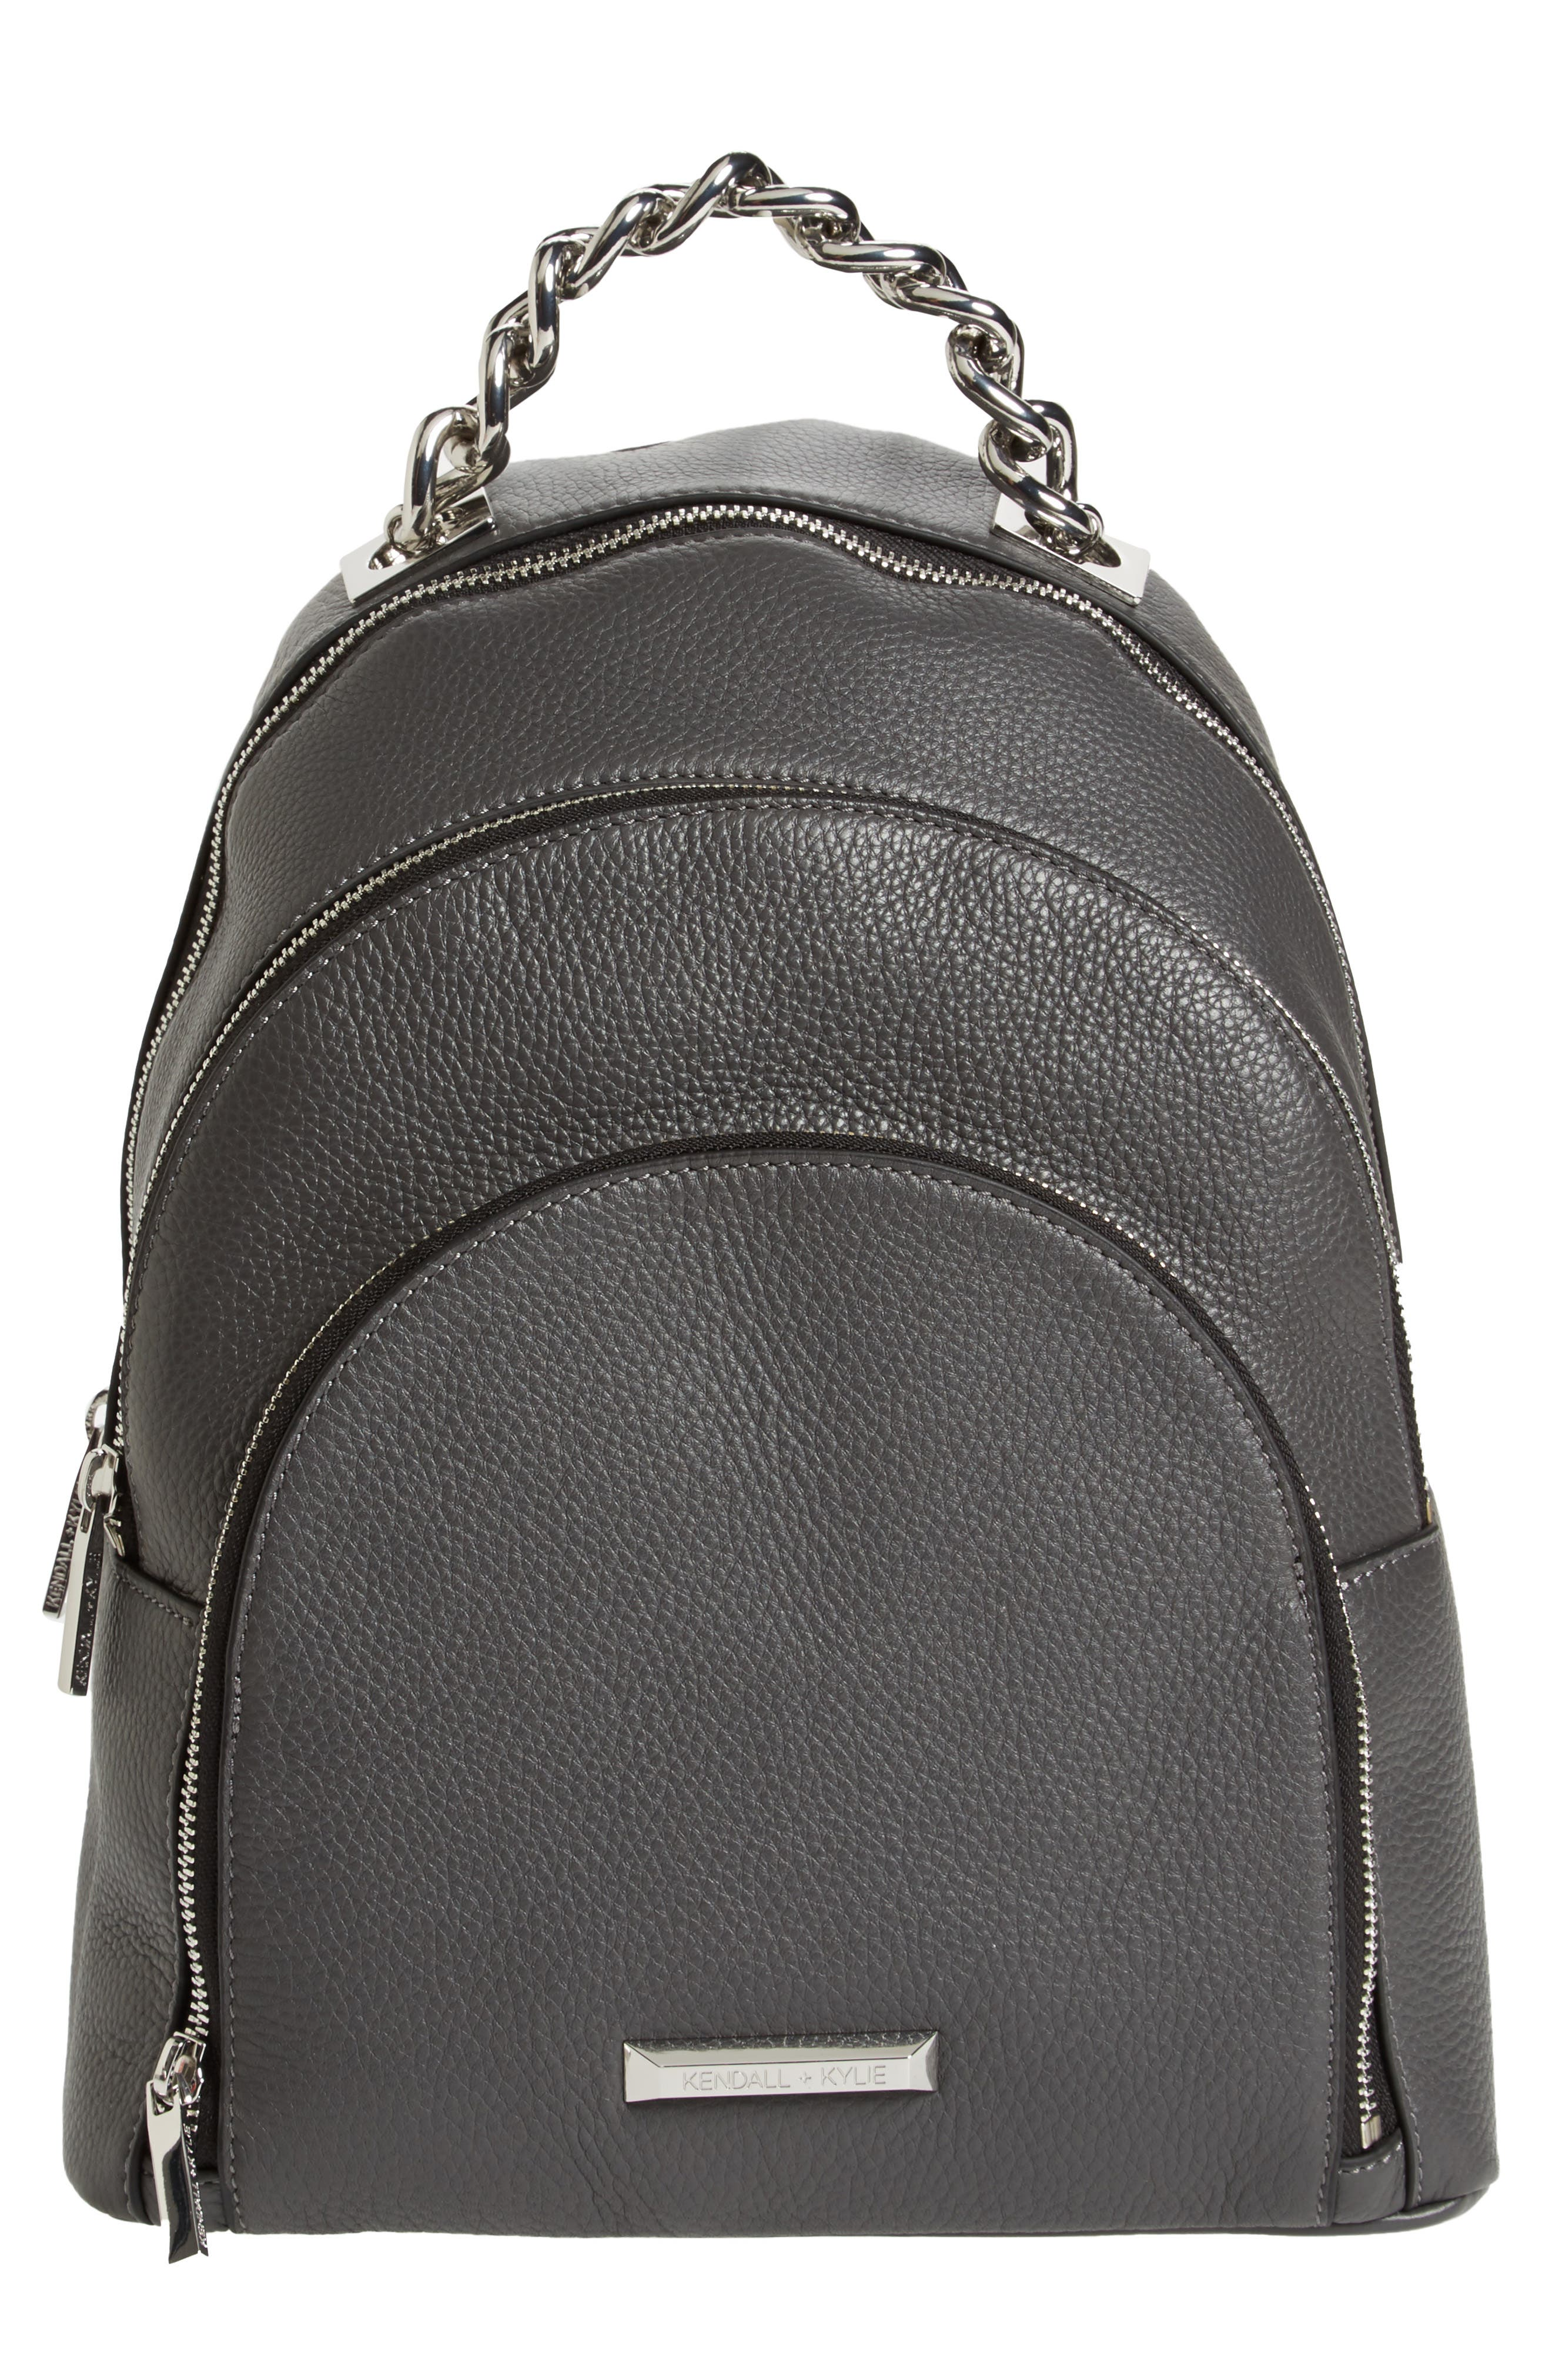 KENDALL + KYLIE Sloane Leather Backpack